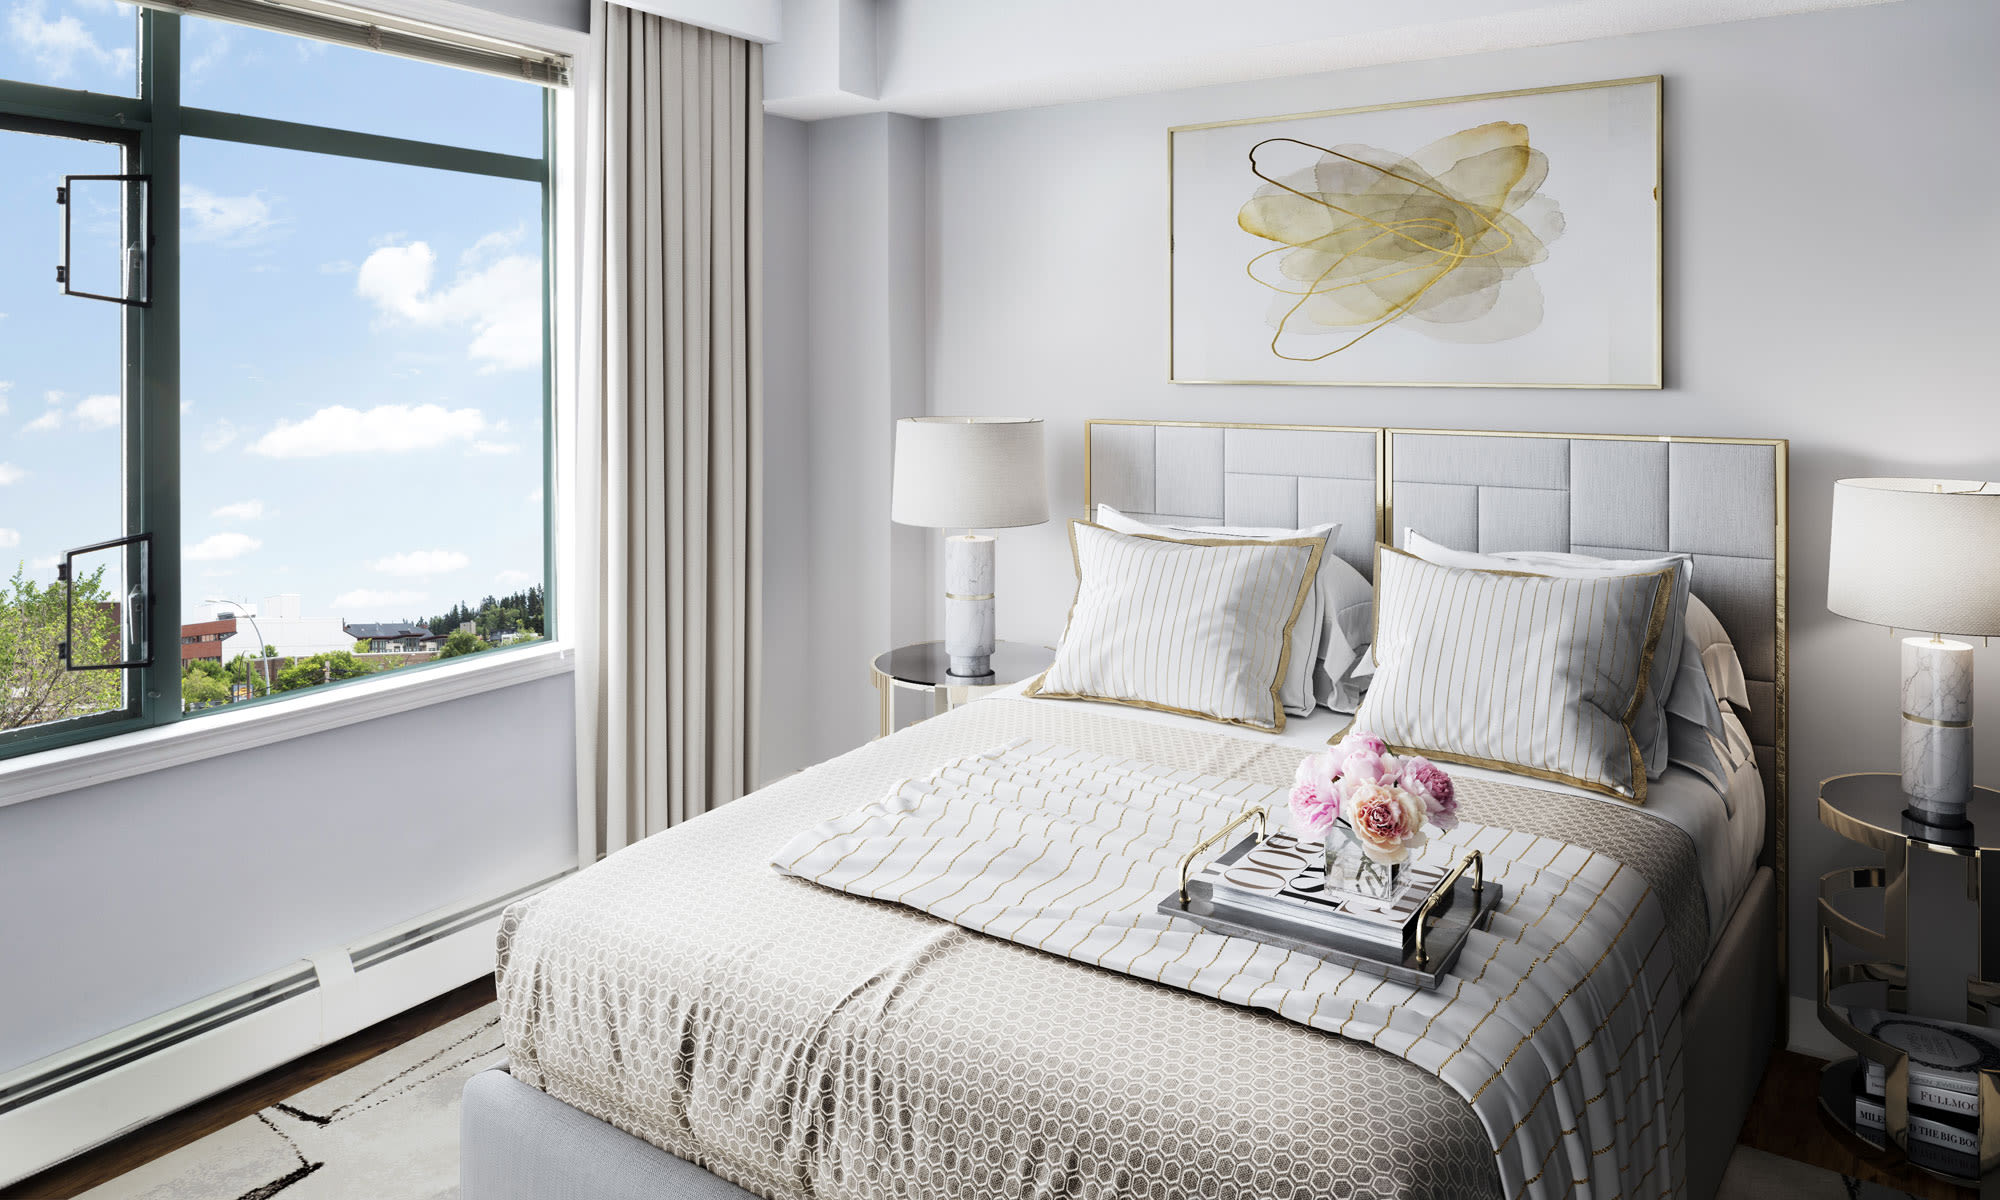 Discovery Pointe offers a naturally well-lit bedroom in Calgary, Alberta